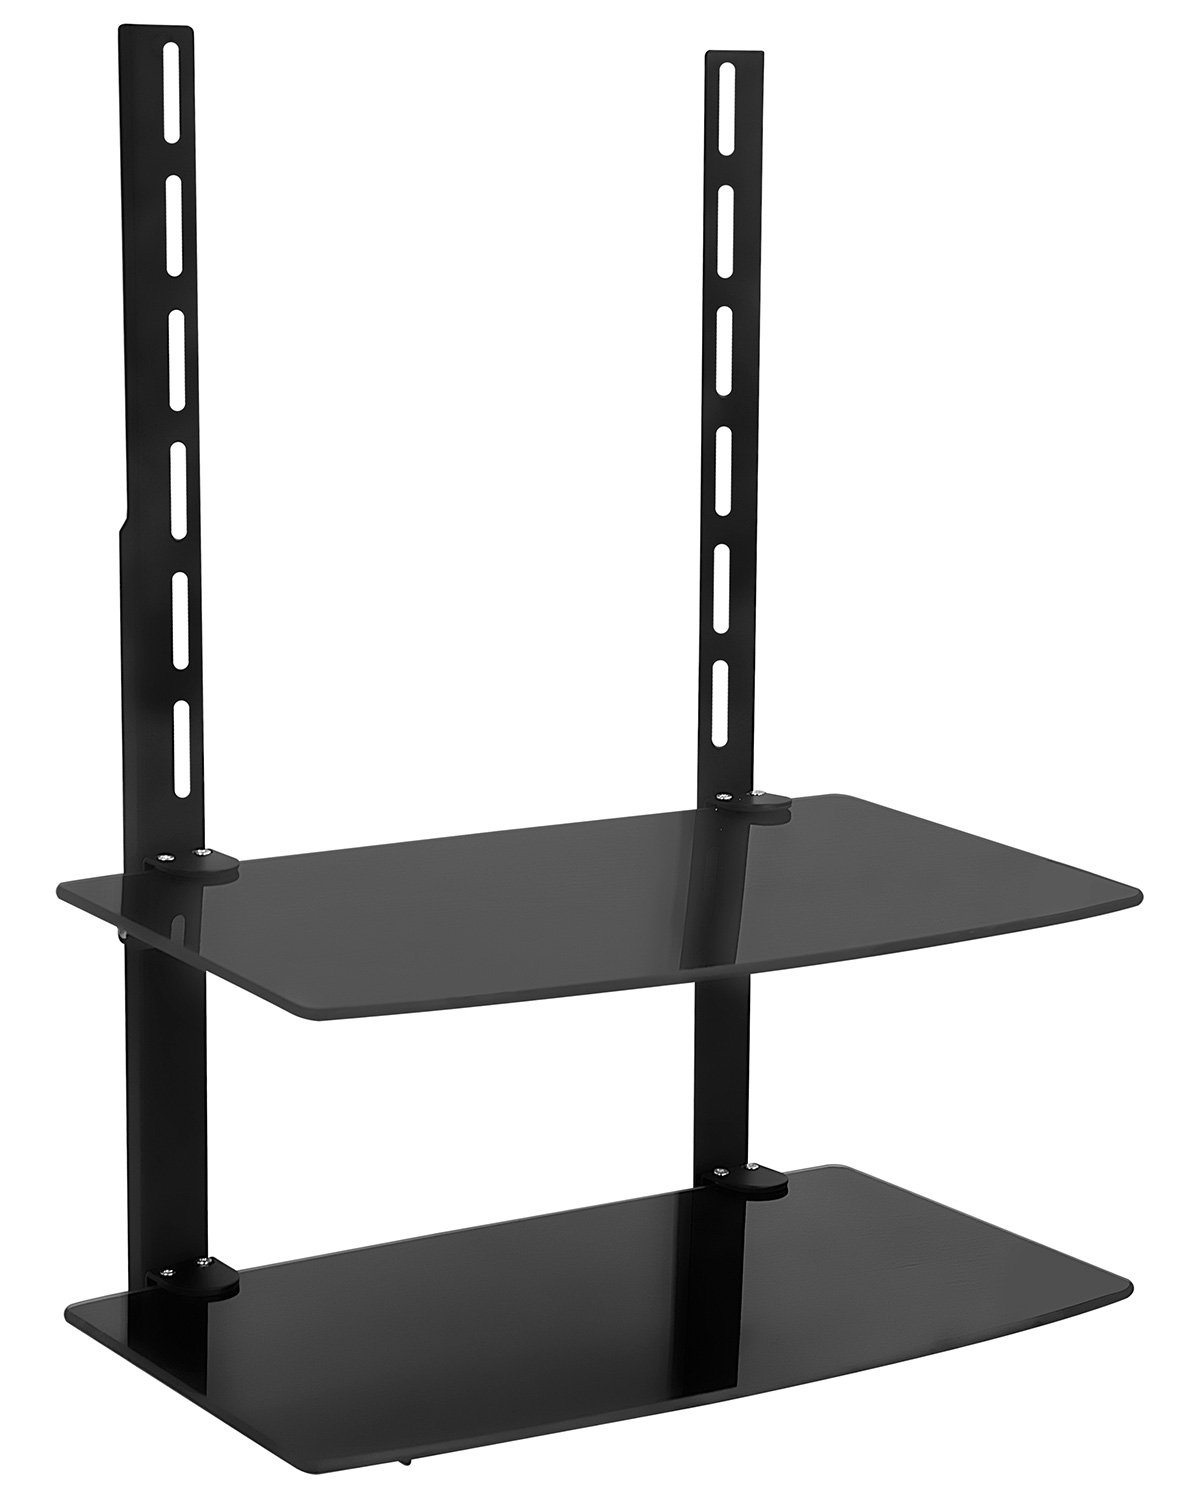 Amazon.com: Mount-It! TV Wall Mount Shelf For Cable Box, DVD Player ...